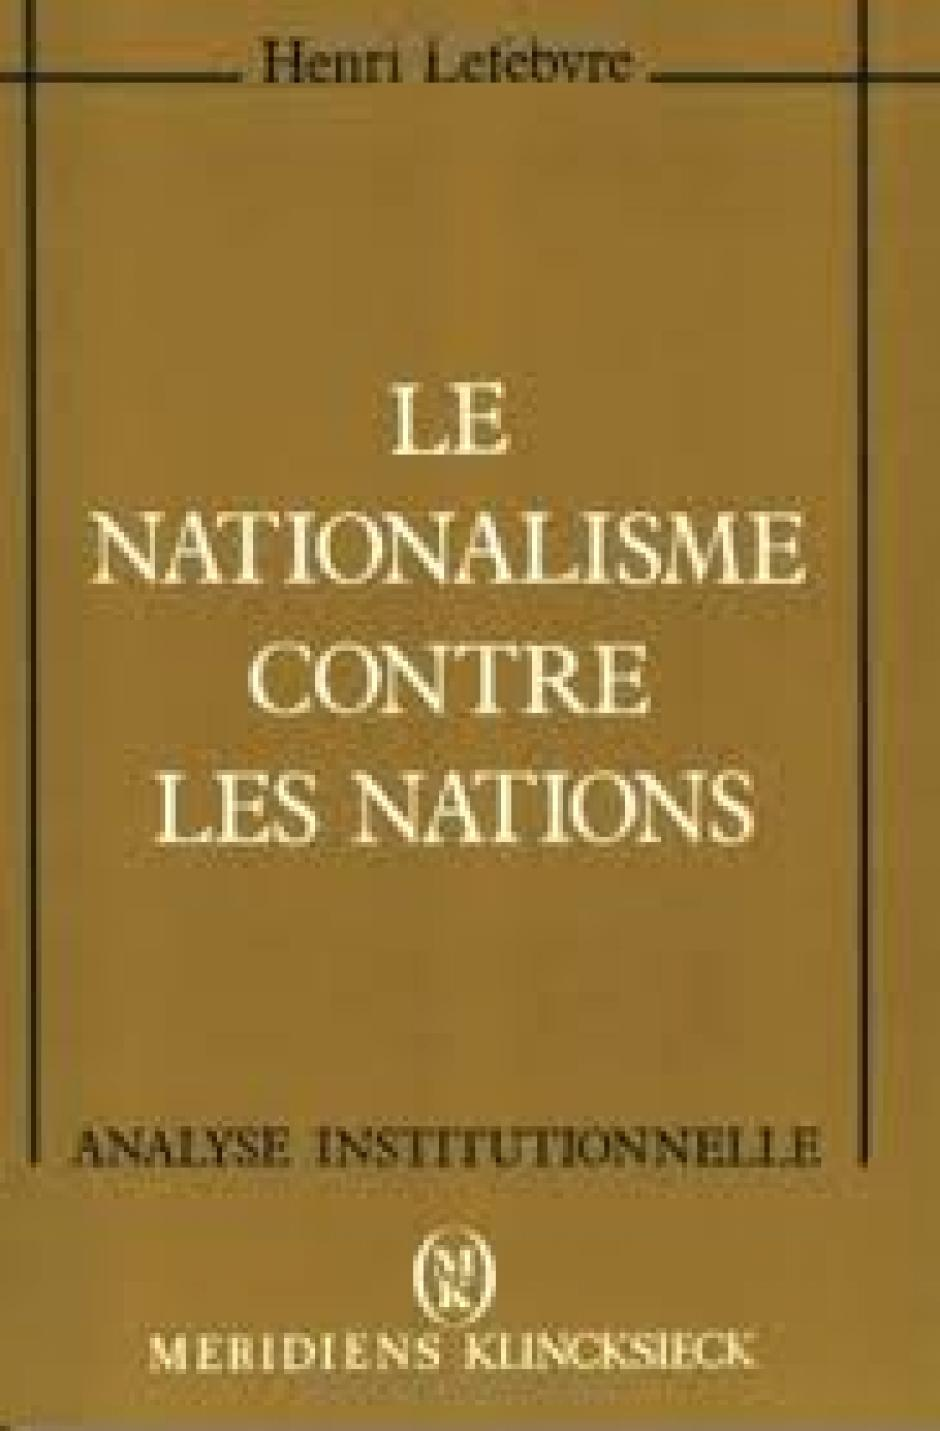 Le nationalisme contre les nations, Henri Lefebvre